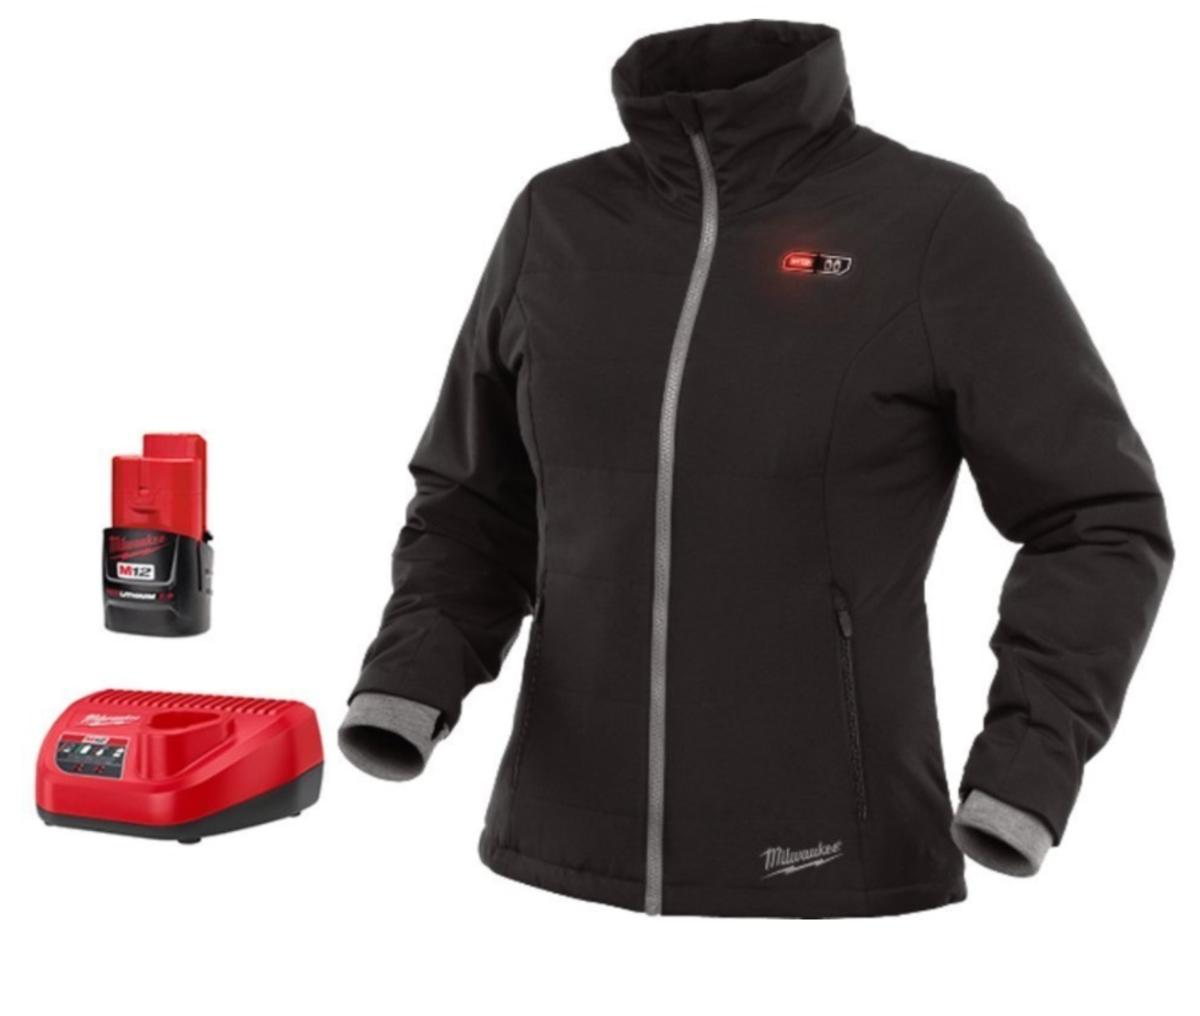 Milwaukee M12 Heated Jacket 2